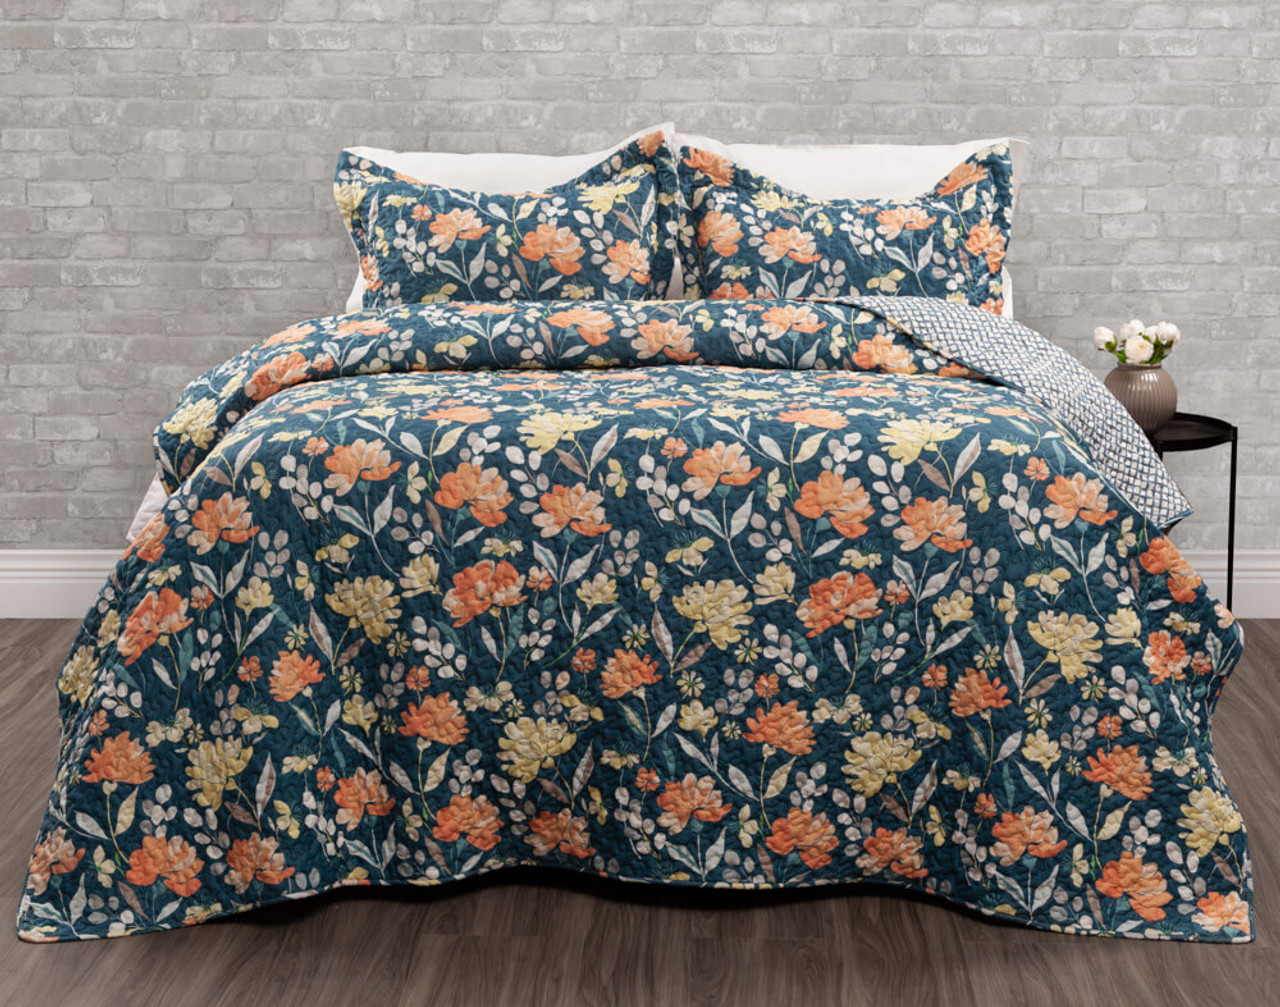 Ladysmith Coverlet Set, featuring bright yellow and orange florals on a petrol blue background.